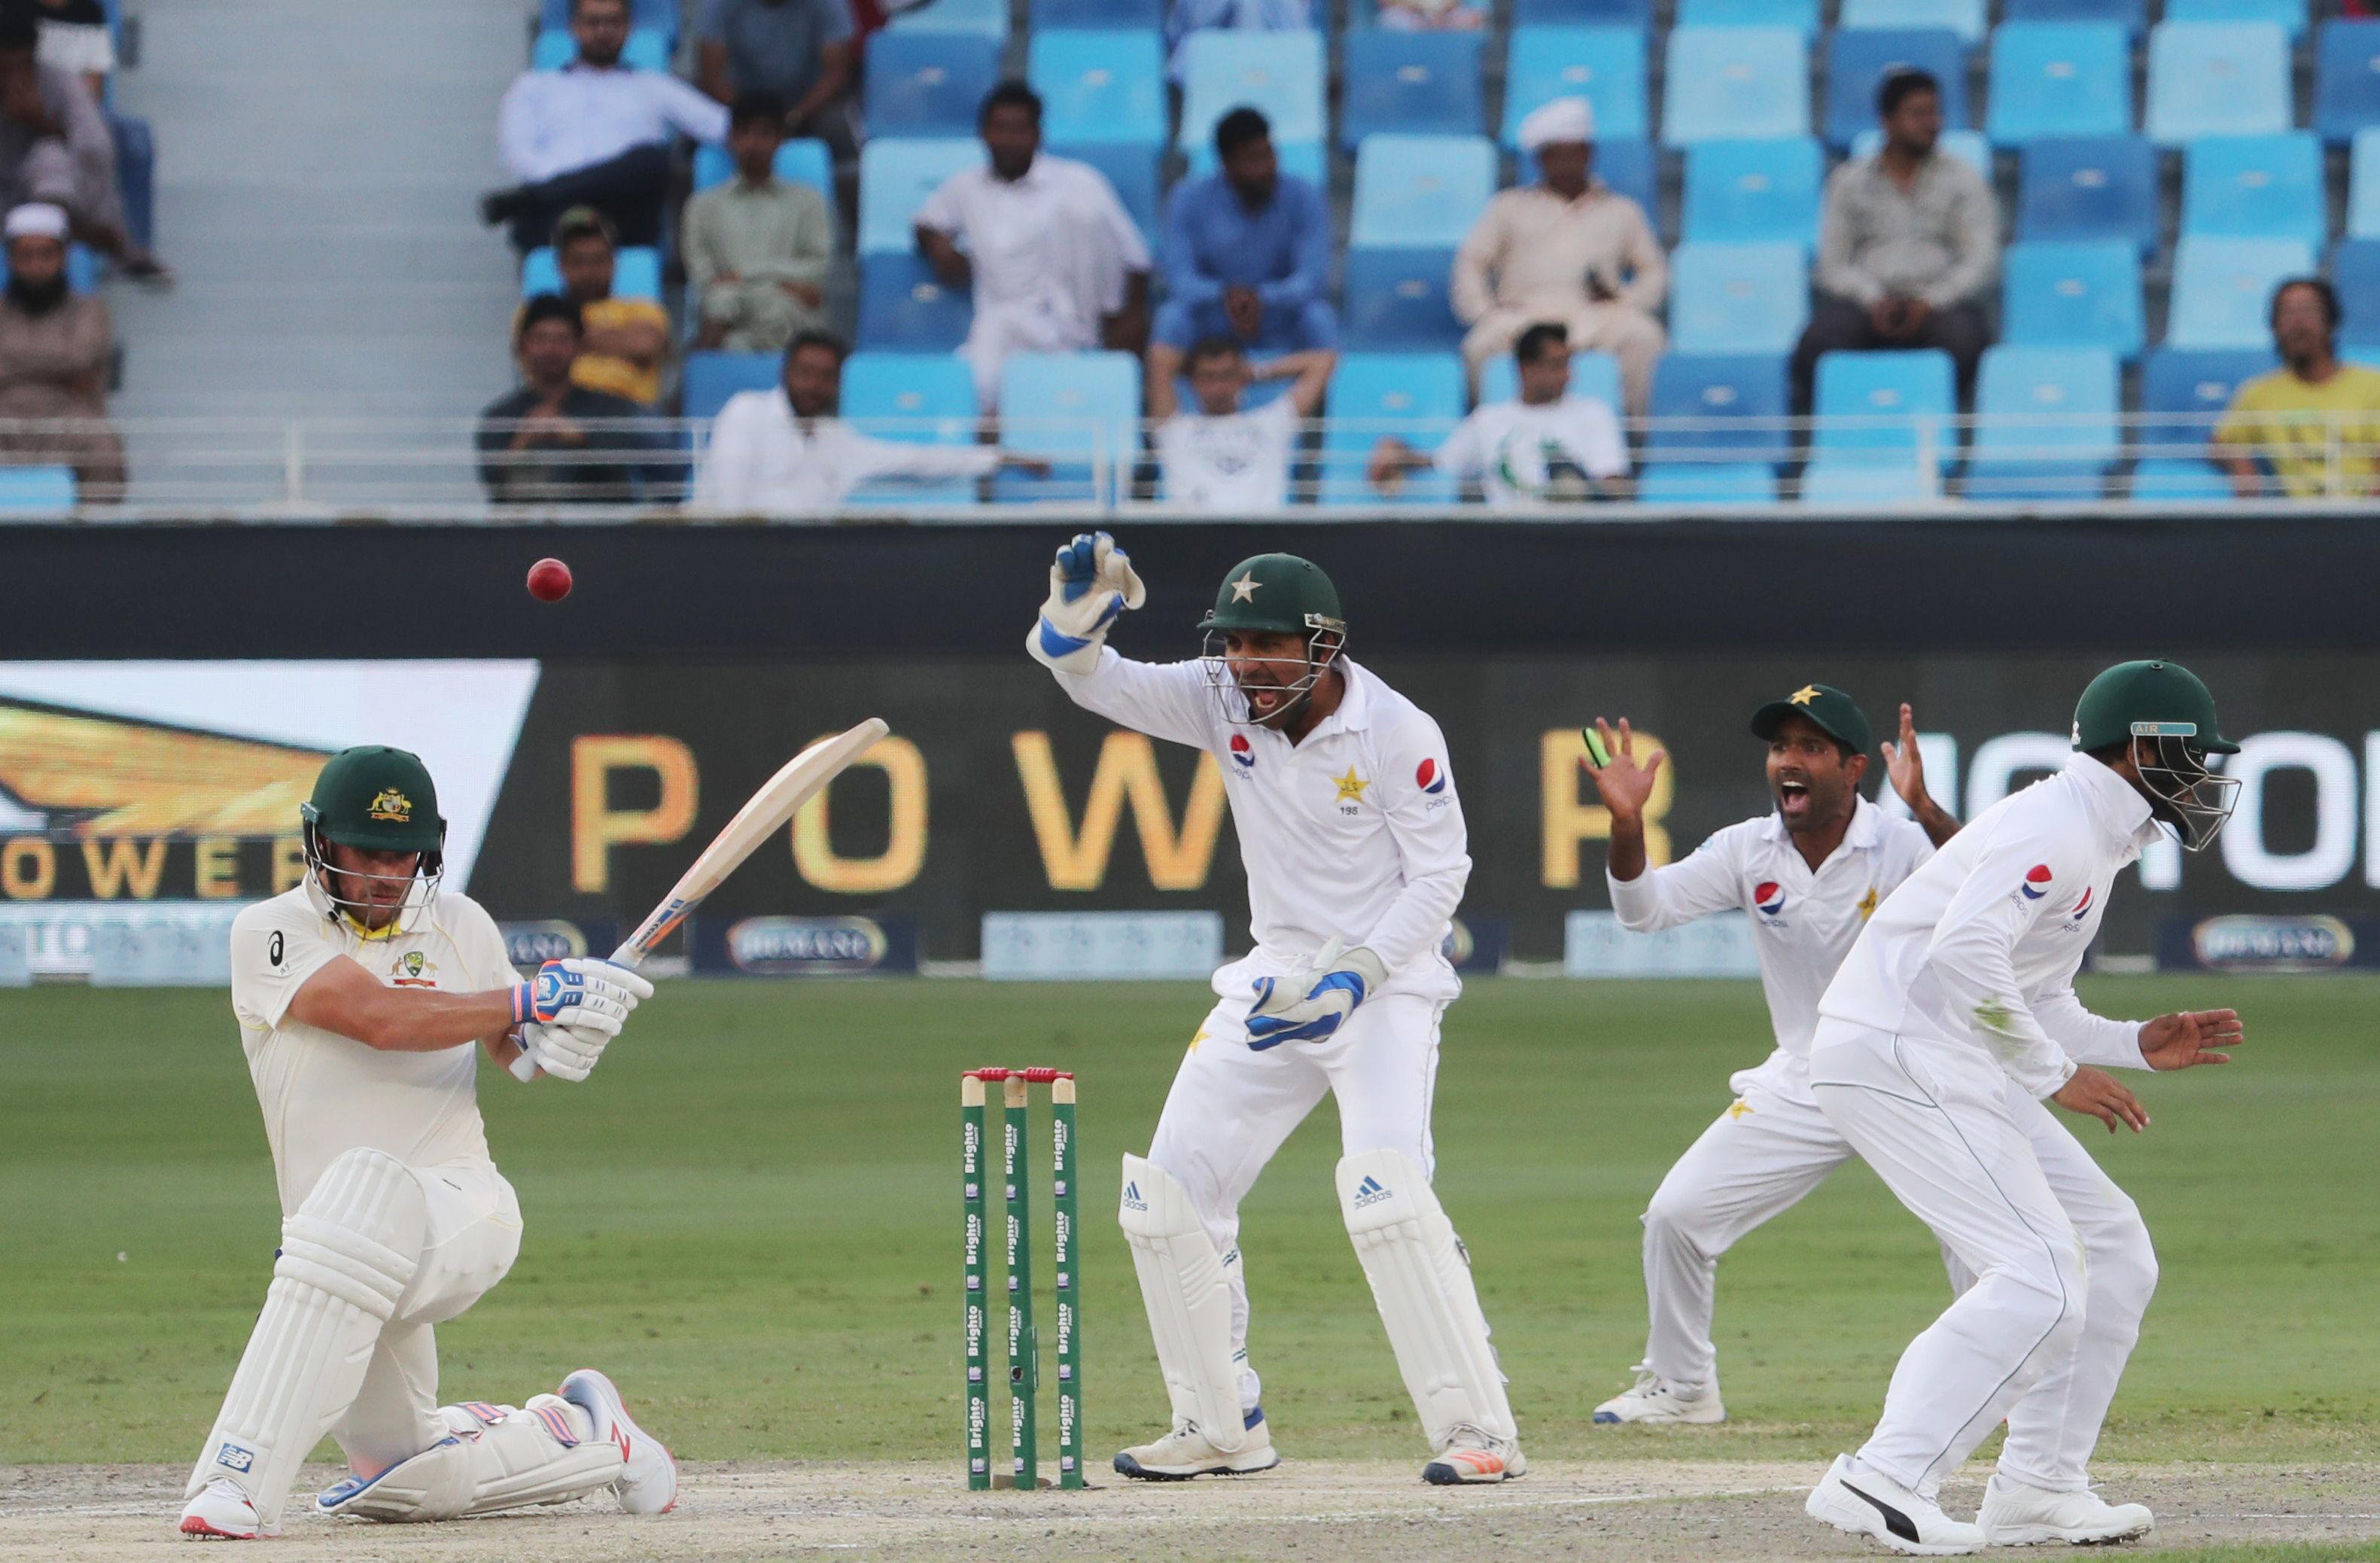 1.	Pakistani cricketers appeal for the wicket of Australian cricketer Aaron Finch (L) during day two of the first Test match in the series between Australia and Pakistan at Dubai on October 8, 2018 in Dubai. (Photo by KARIM SAHIB / AFP)